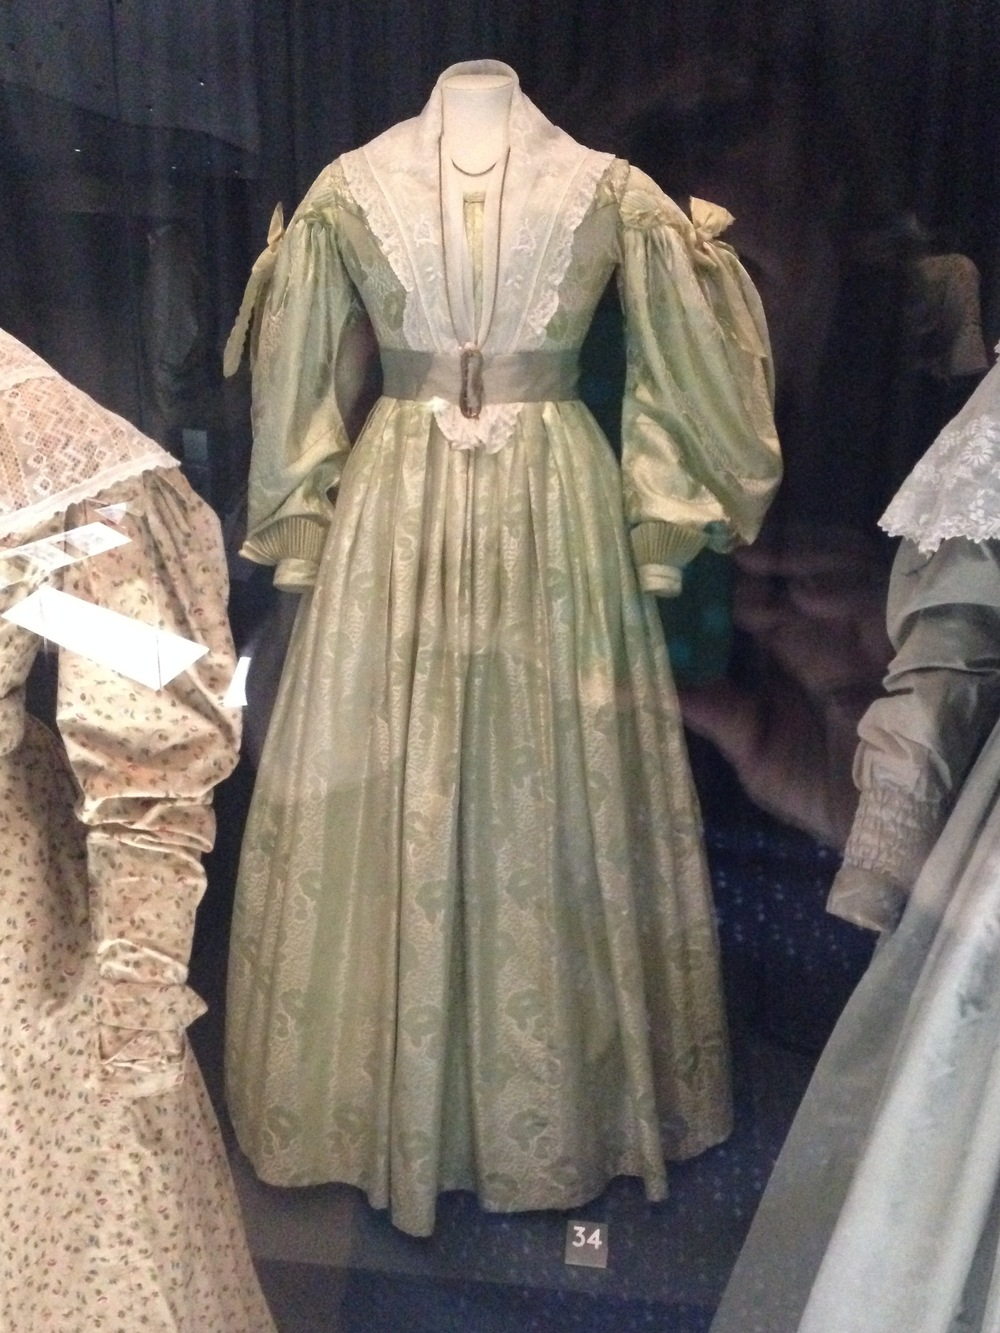 A 19th-century dress (post-regency, not sure when).